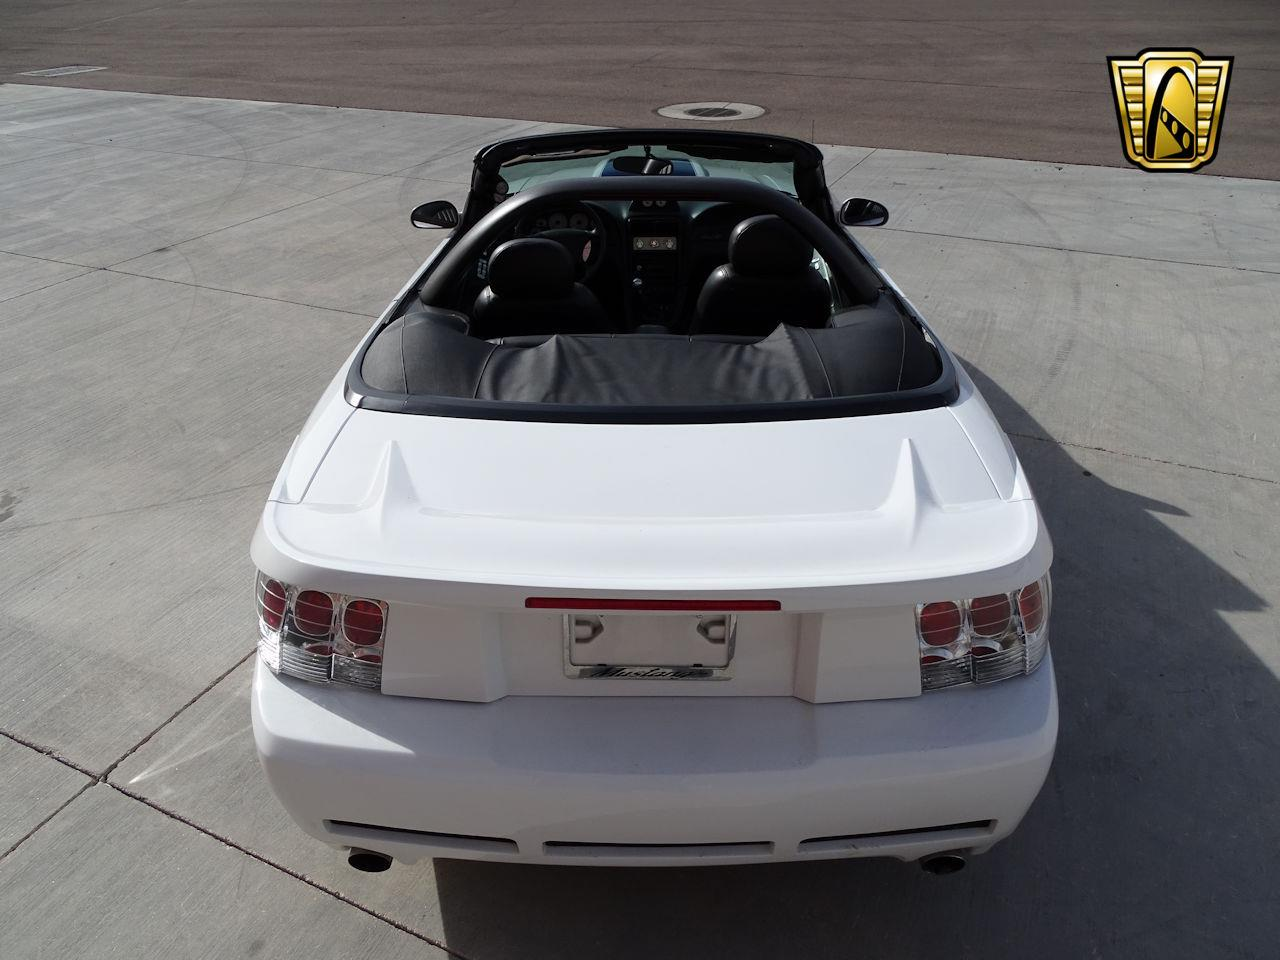 Large Picture of 2002 Ford Mustang located in Arizona - $31,995.00 - MZG0